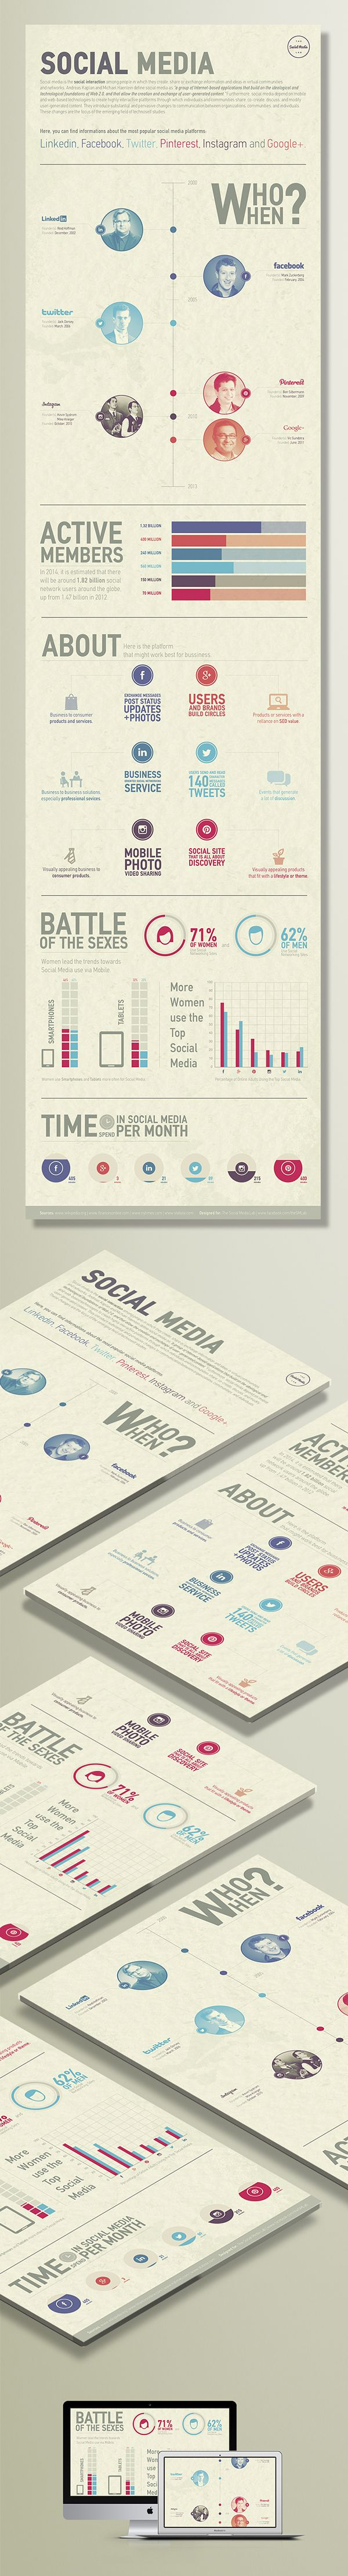 An infographic designed for The Social Media Lab.